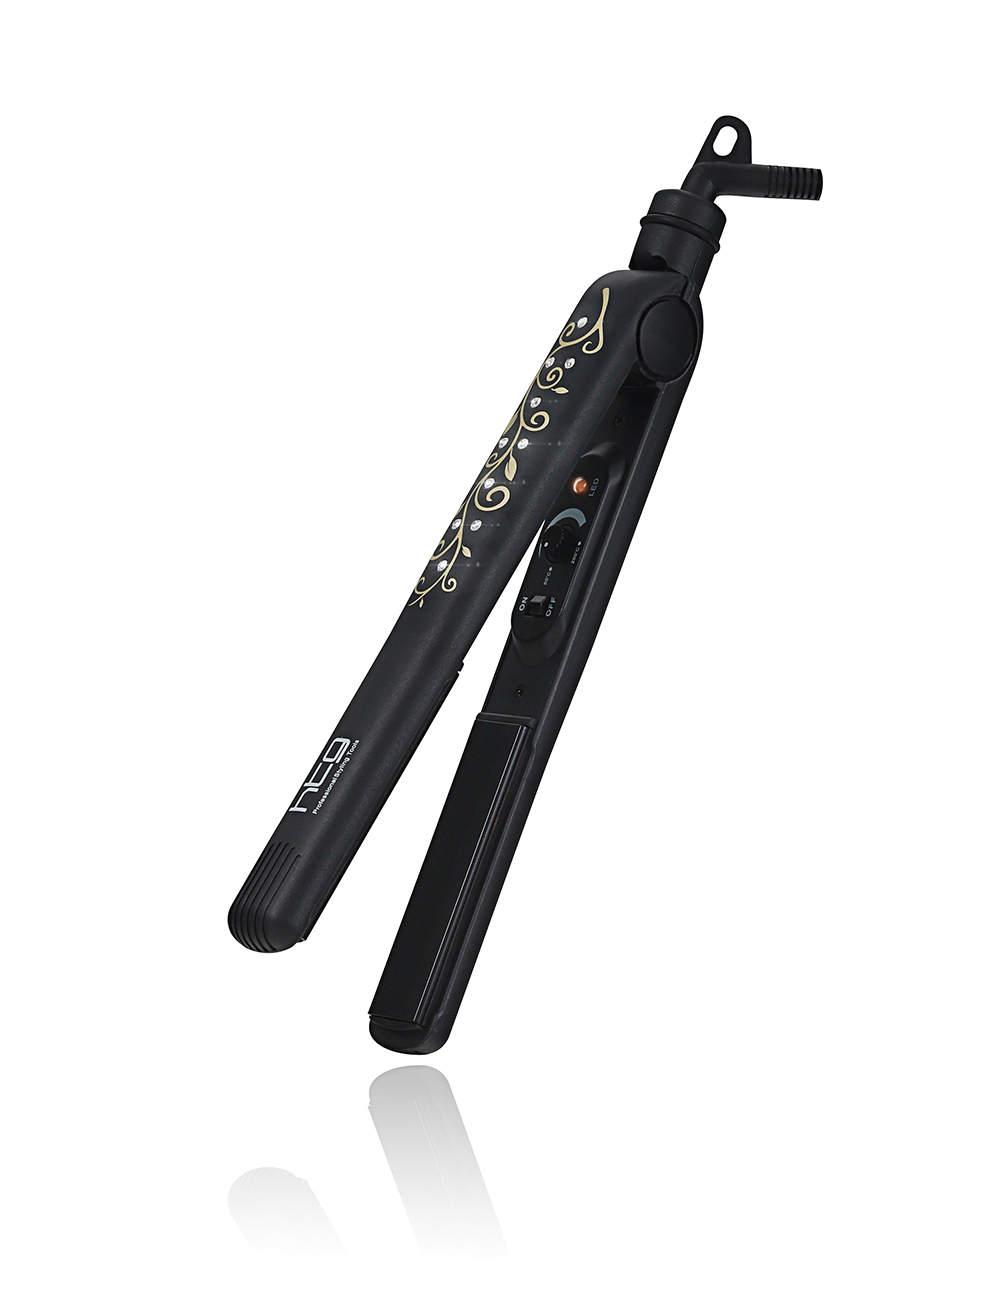 Professional Hair Straightener Hair Straightening Iron Hair flat rron and Curling iron +Diamond on body HT062